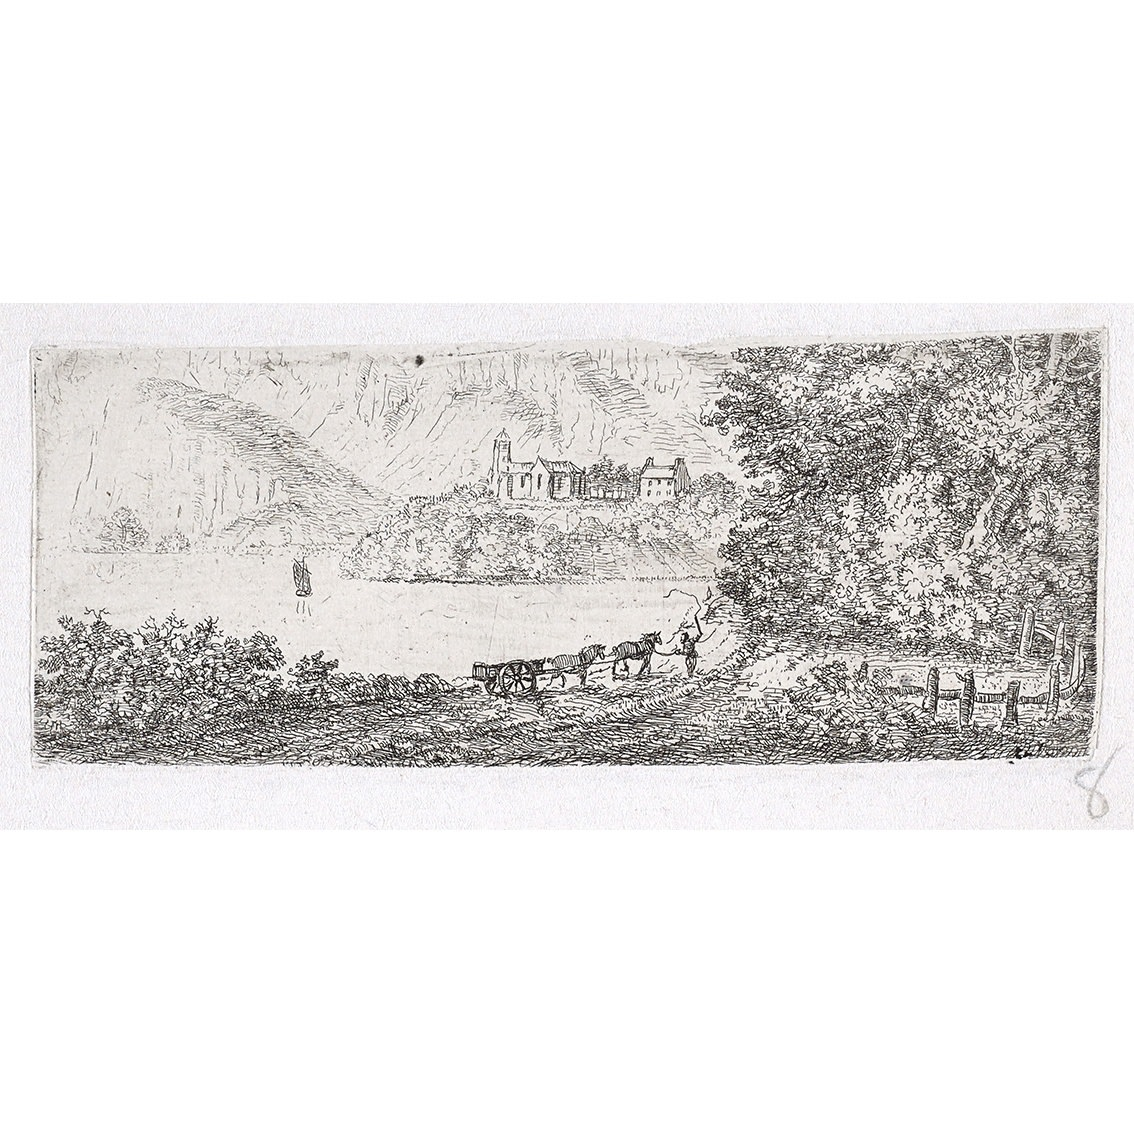 John Clerk of Eldin Duddingston etching 2 x 5 inches only state